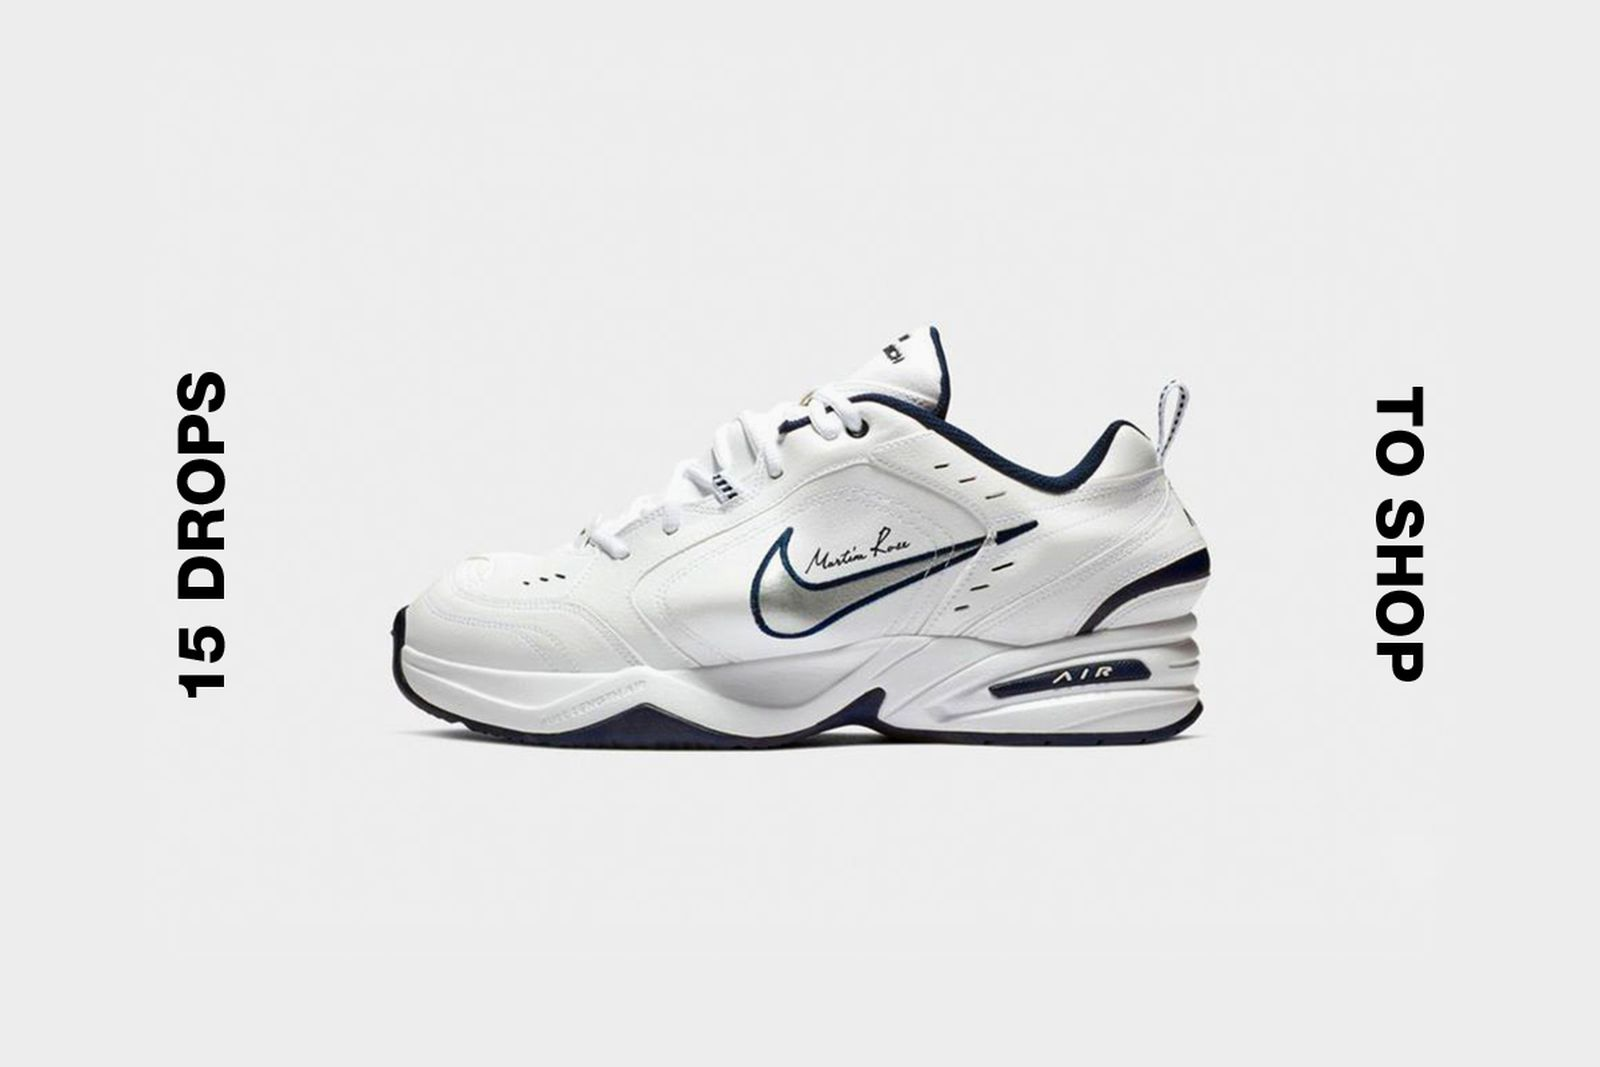 martine rose nike air monarch best drops buy ALCH Gucci M+RC NOIR